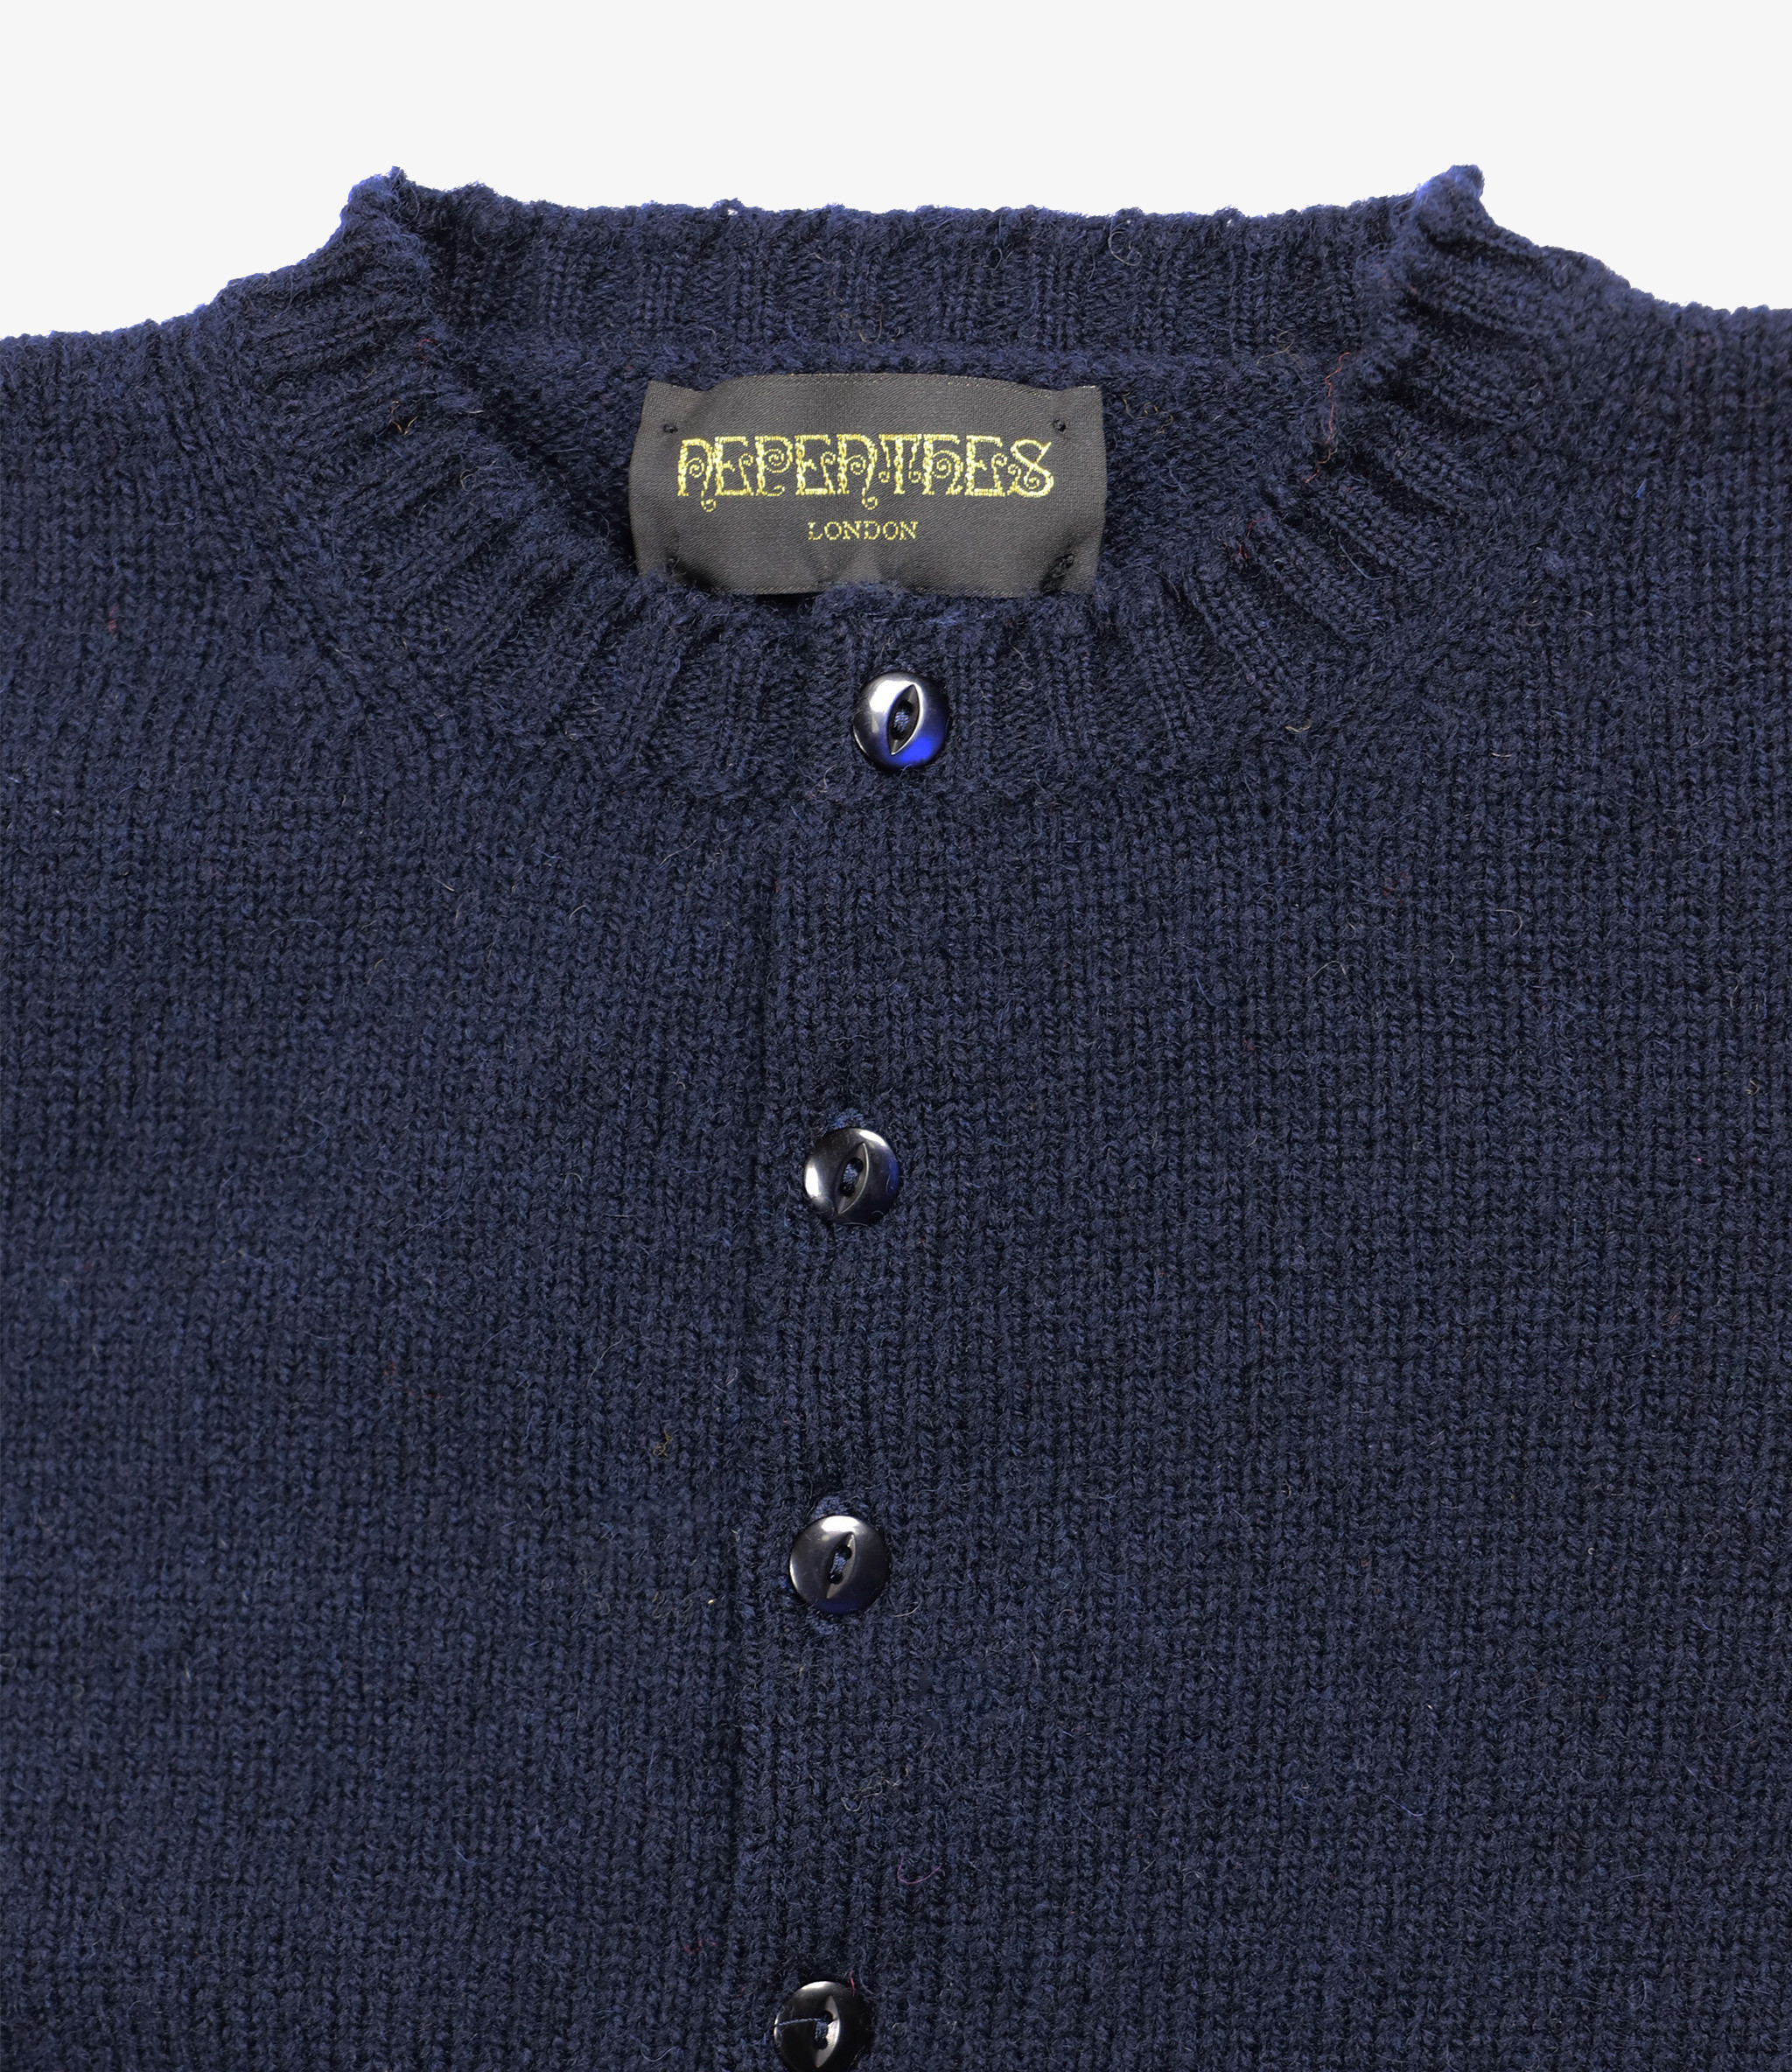 Nepenthes London Fisherman Pocket Crew Cardigan - LS - Navy